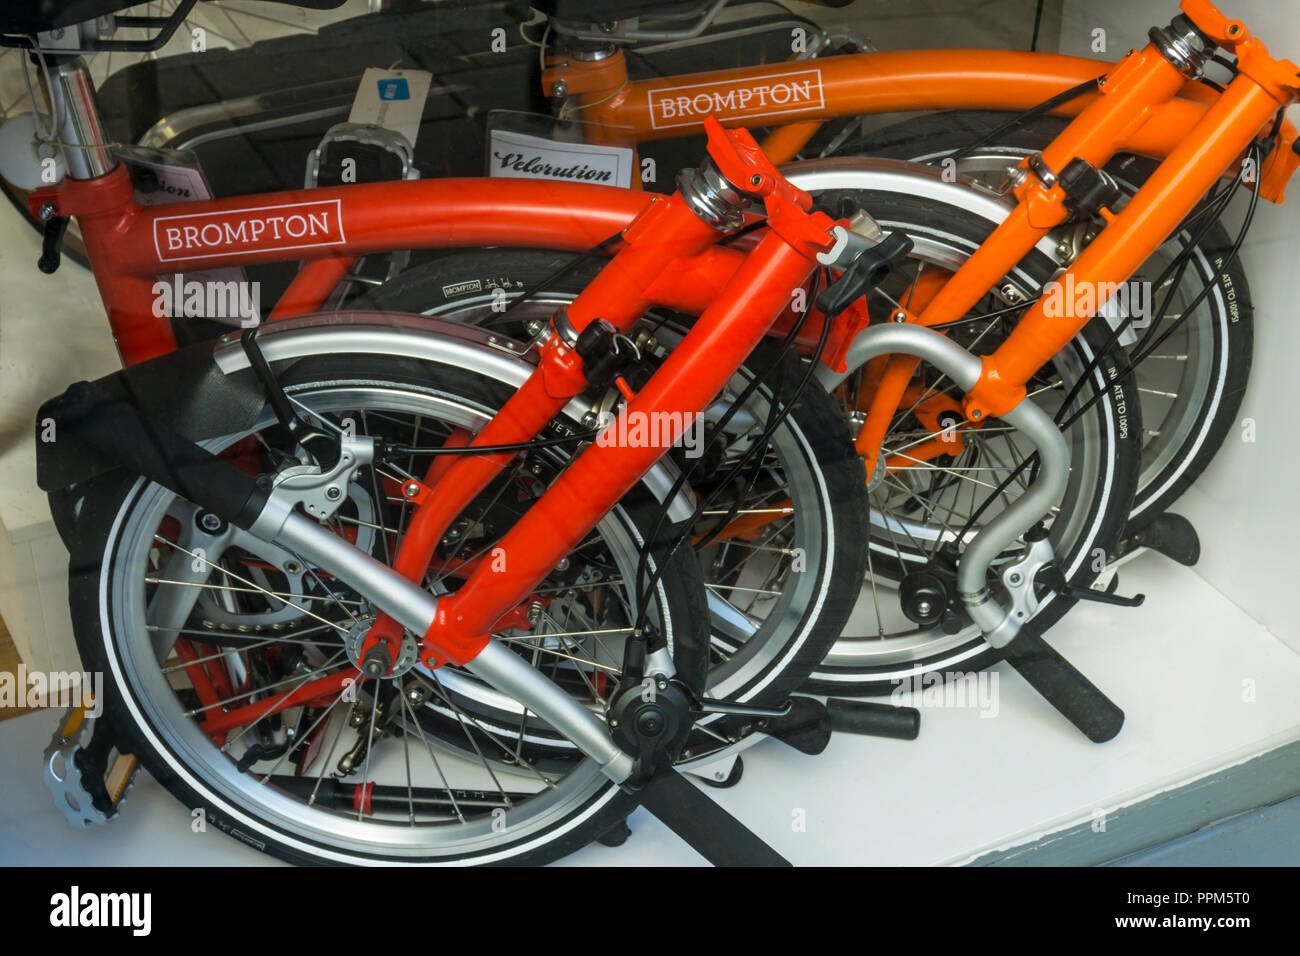 Brompton folding bicycles folded into a small space in a shop window. - Stock Image